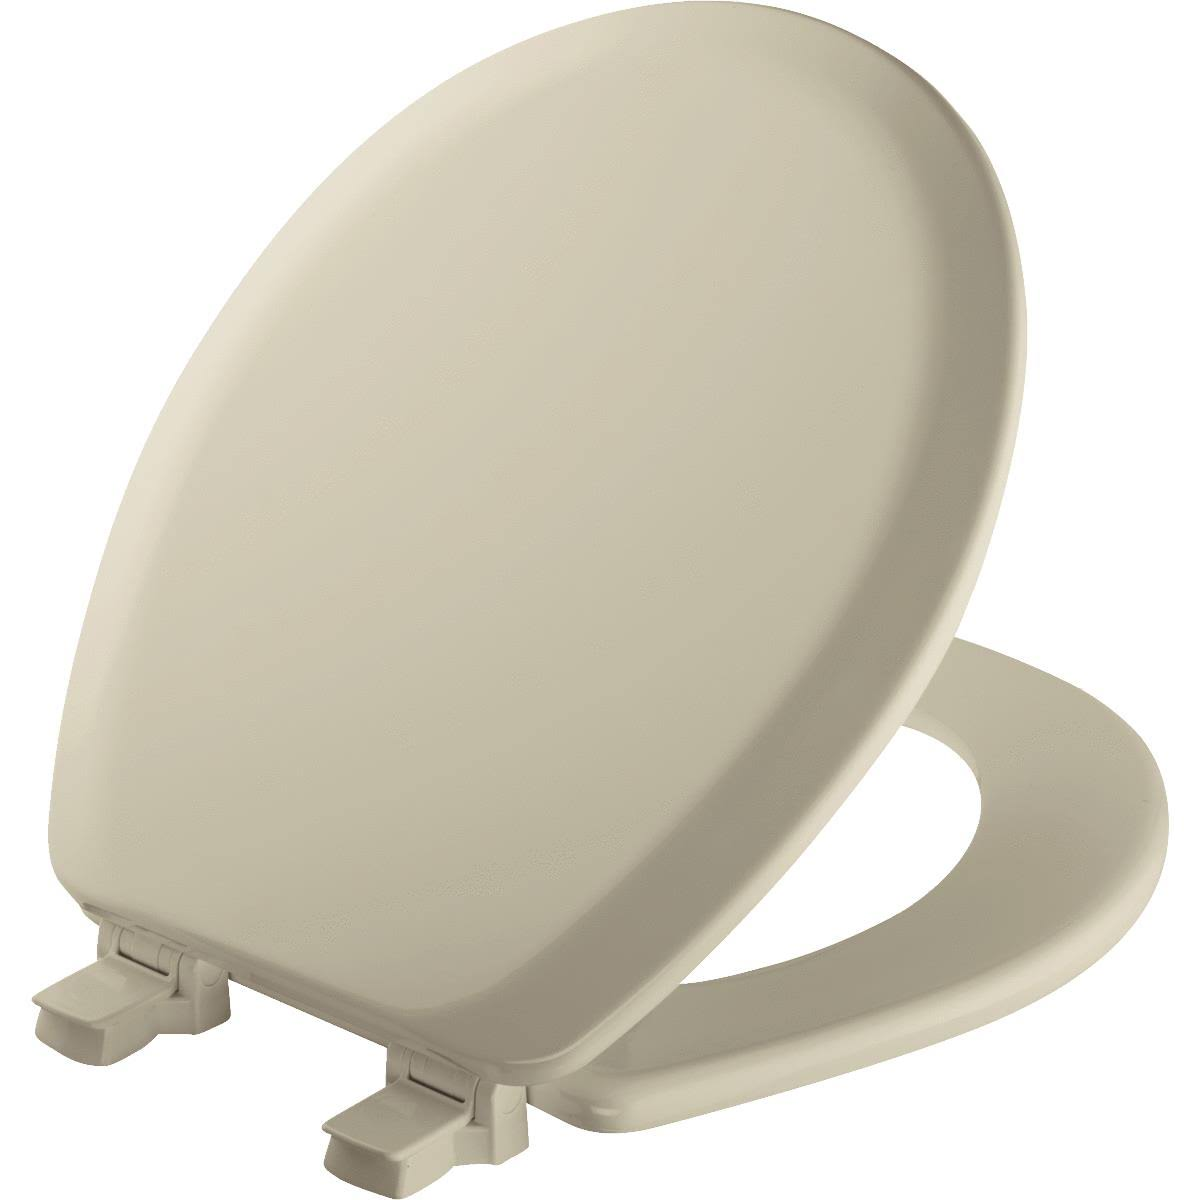 Bemis Manufacturing Deluxe Wood Toilet Seat